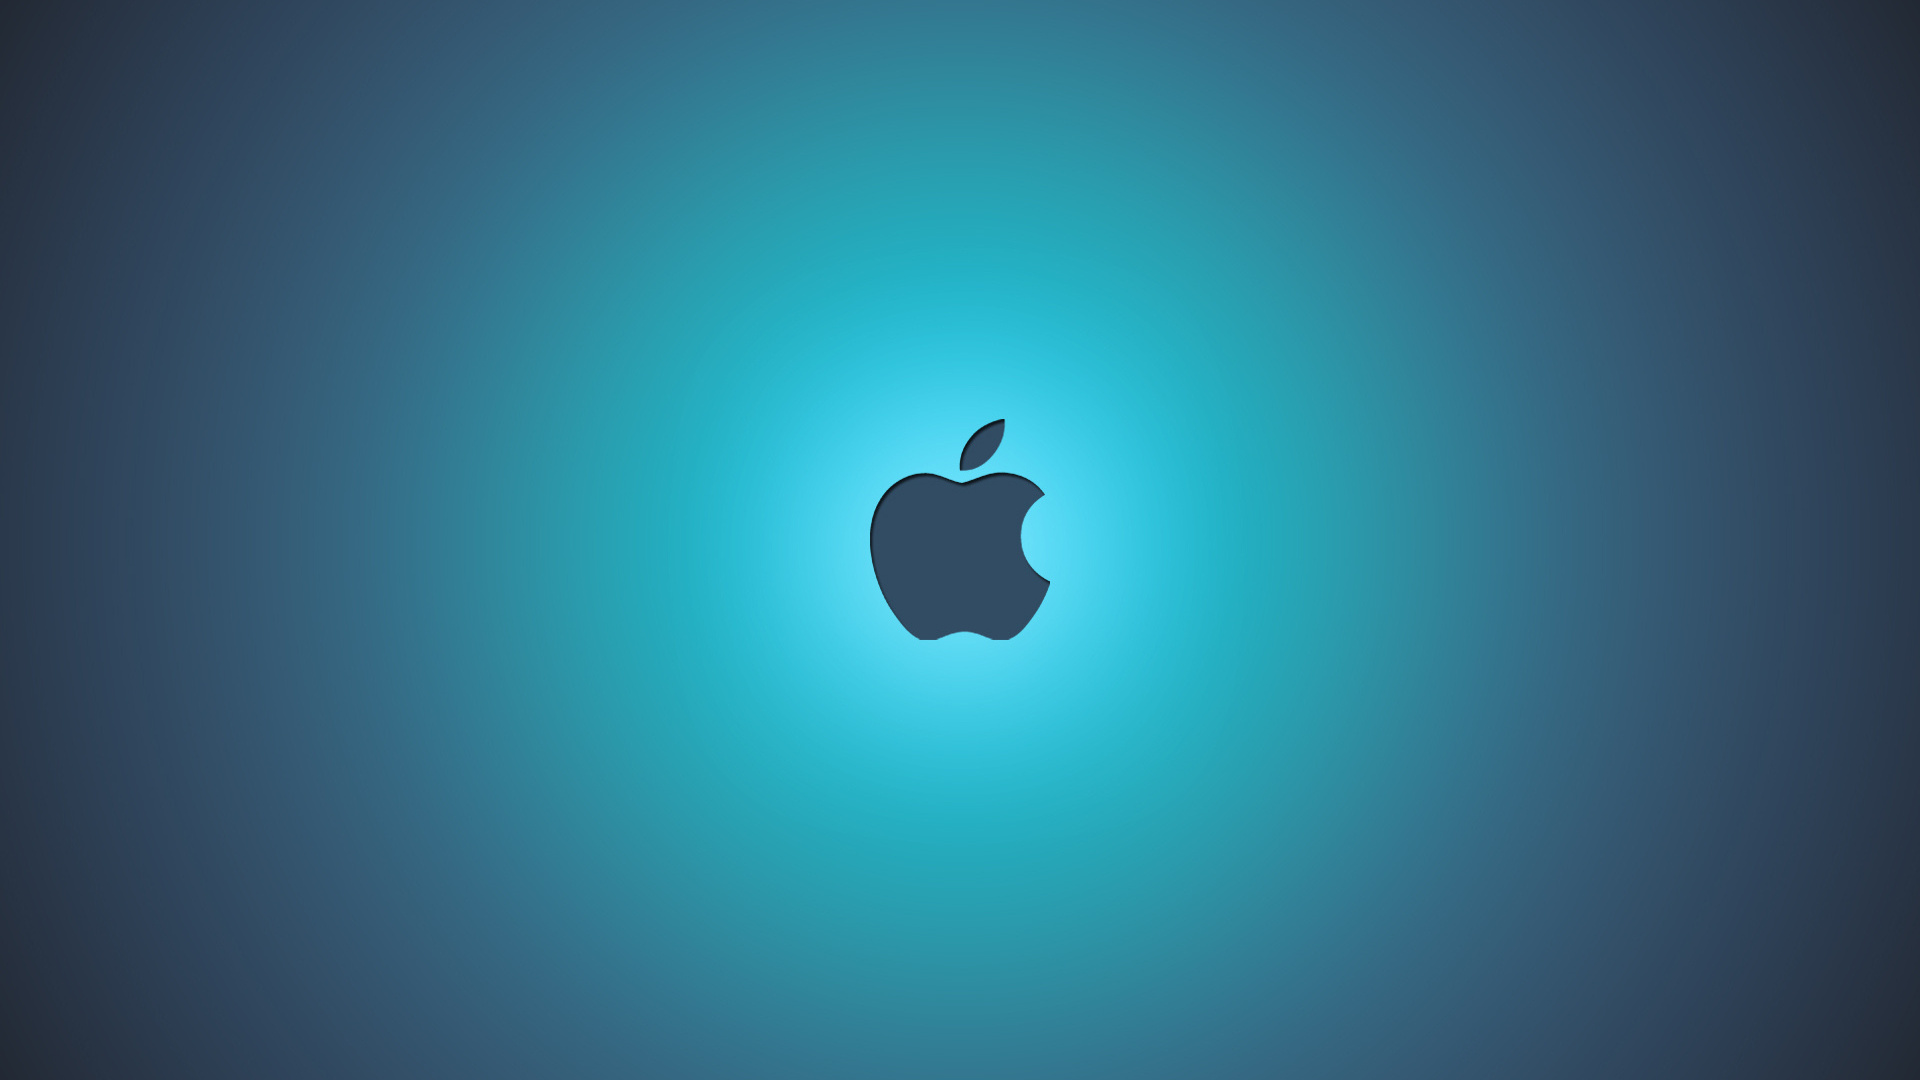 50 MAC WallpapersBackgrounds In HD For Download 1920x1080